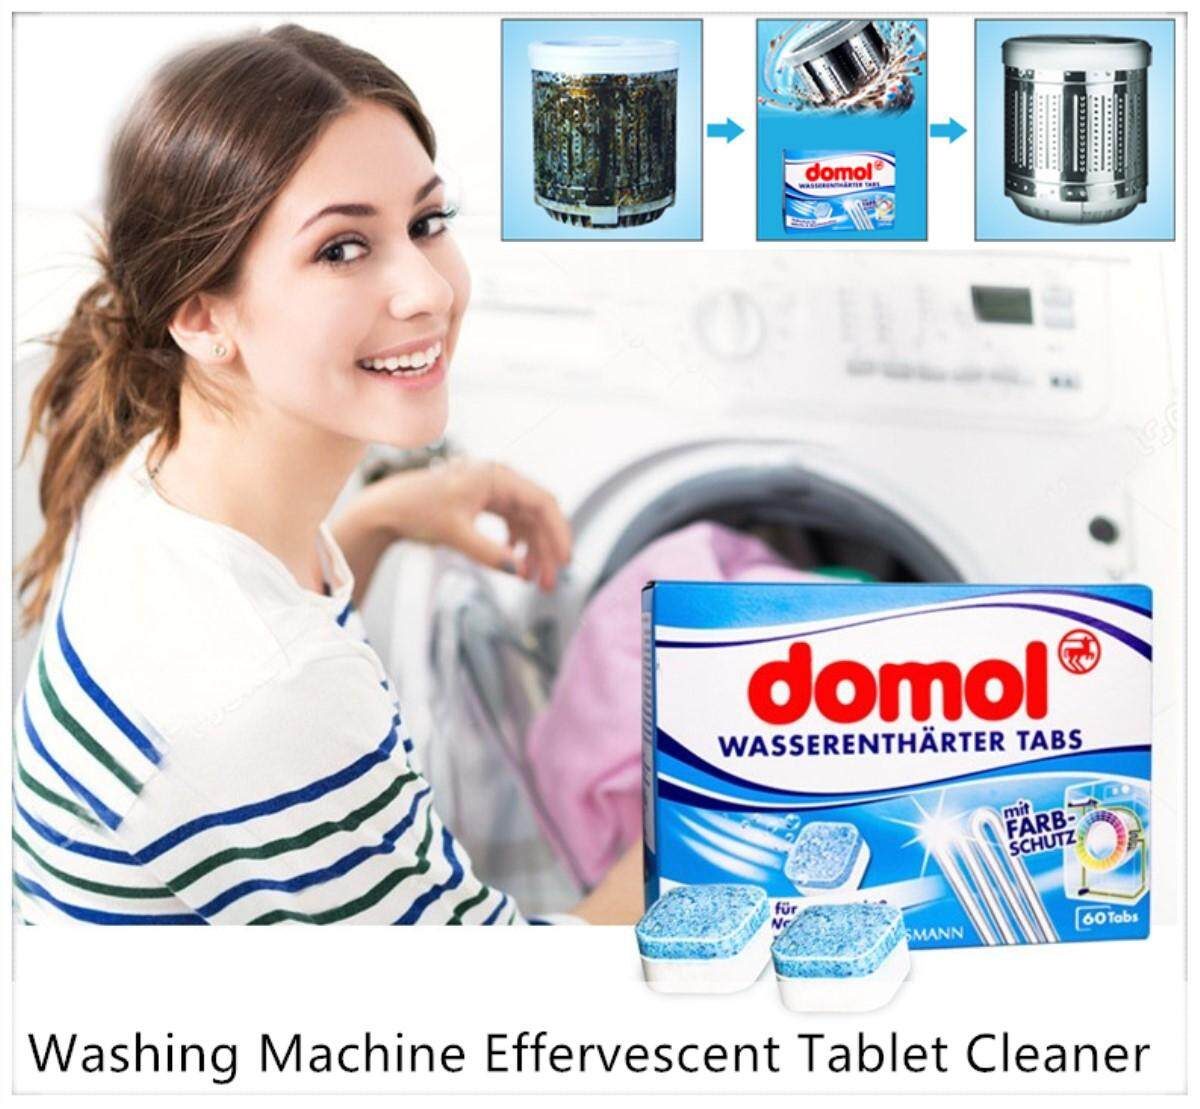 Washing Machine Tank Cleaning Multifunctional Effervescent Cleaner